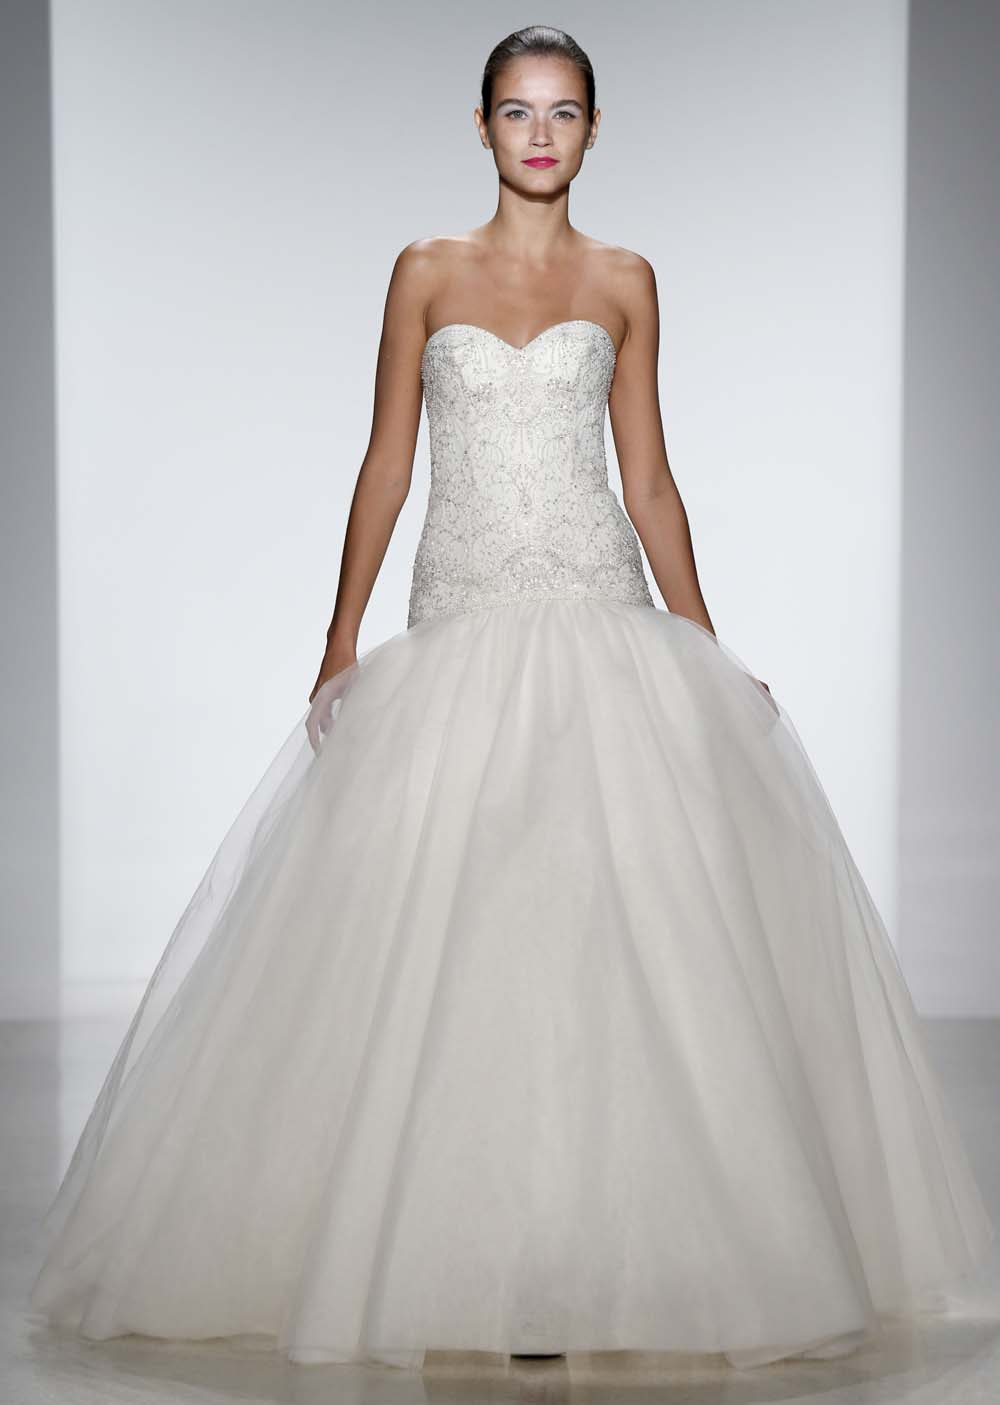 kenneth pool spring 2014 wedding dresses weddingbells